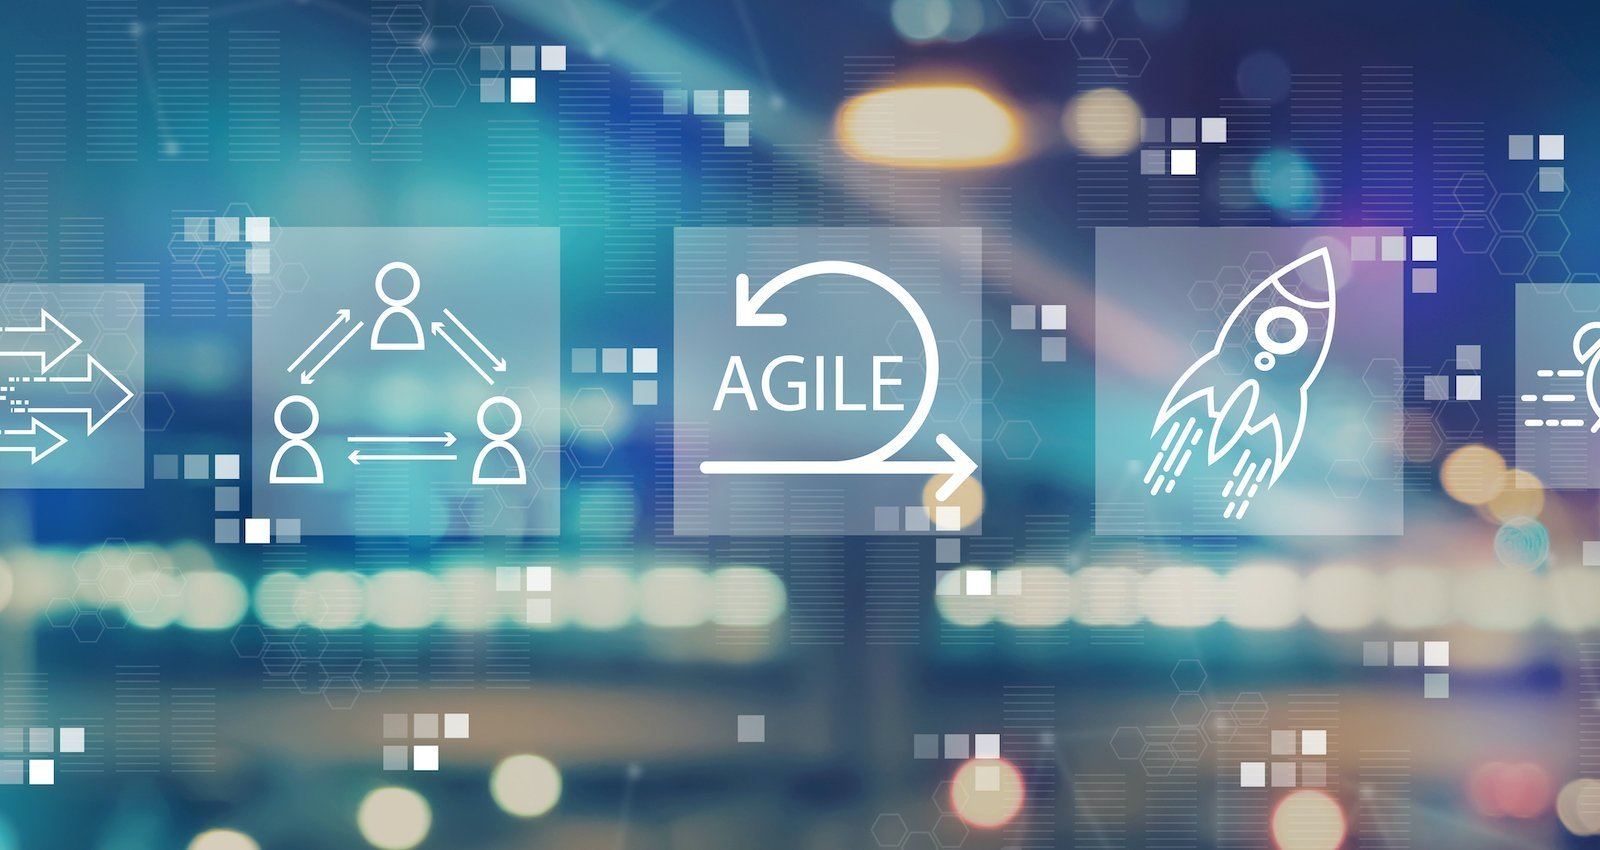 Agile vs Agile 2: What is the Difference?